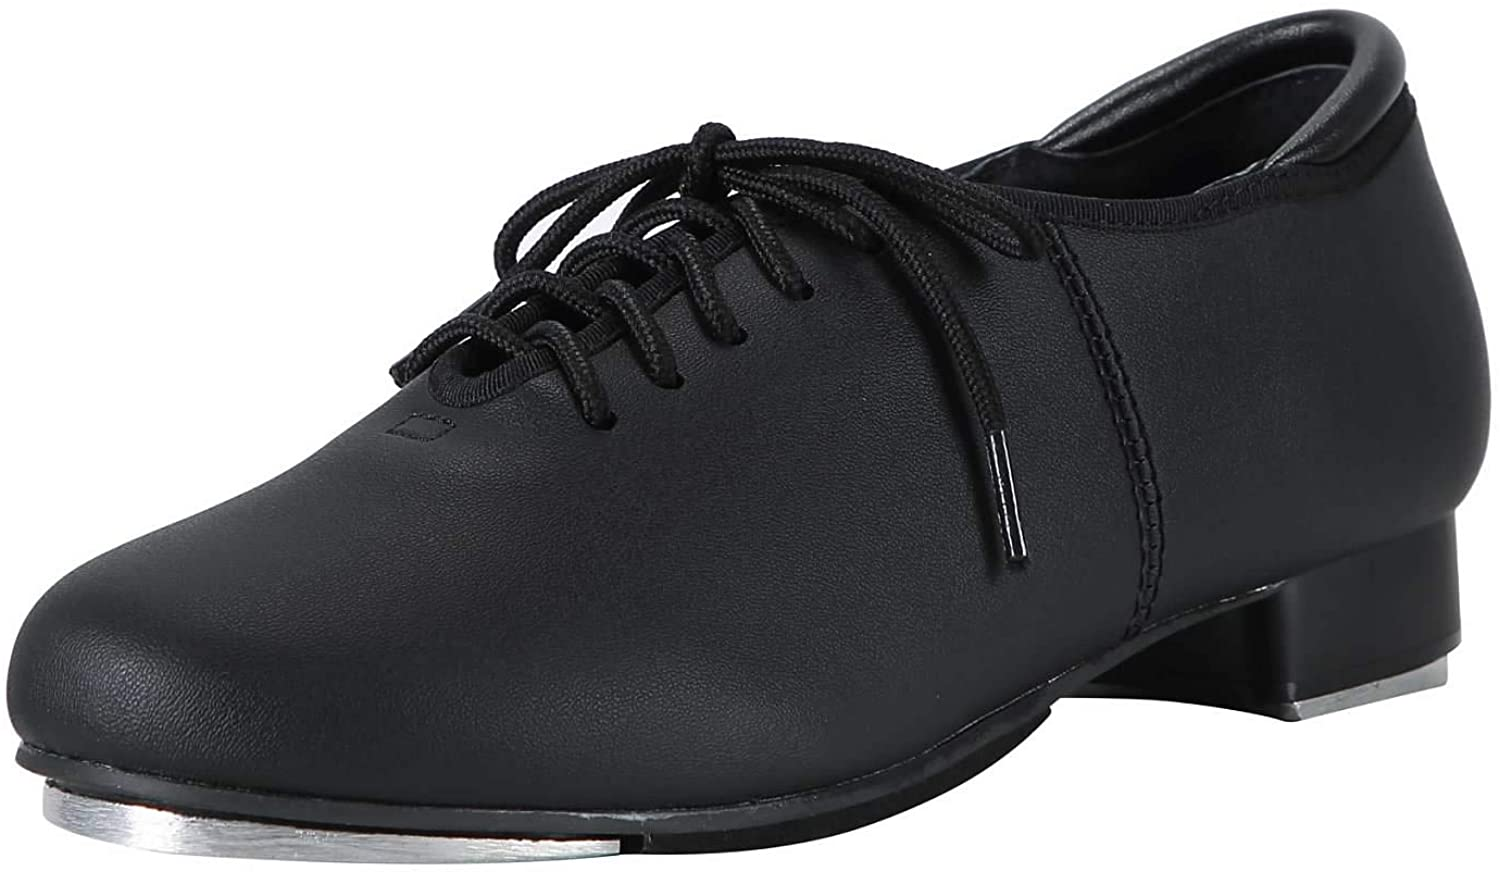 Linodes PU Leather Lace Up Tap Shoe Dance Shoes for Women and Men's Dance Shoes